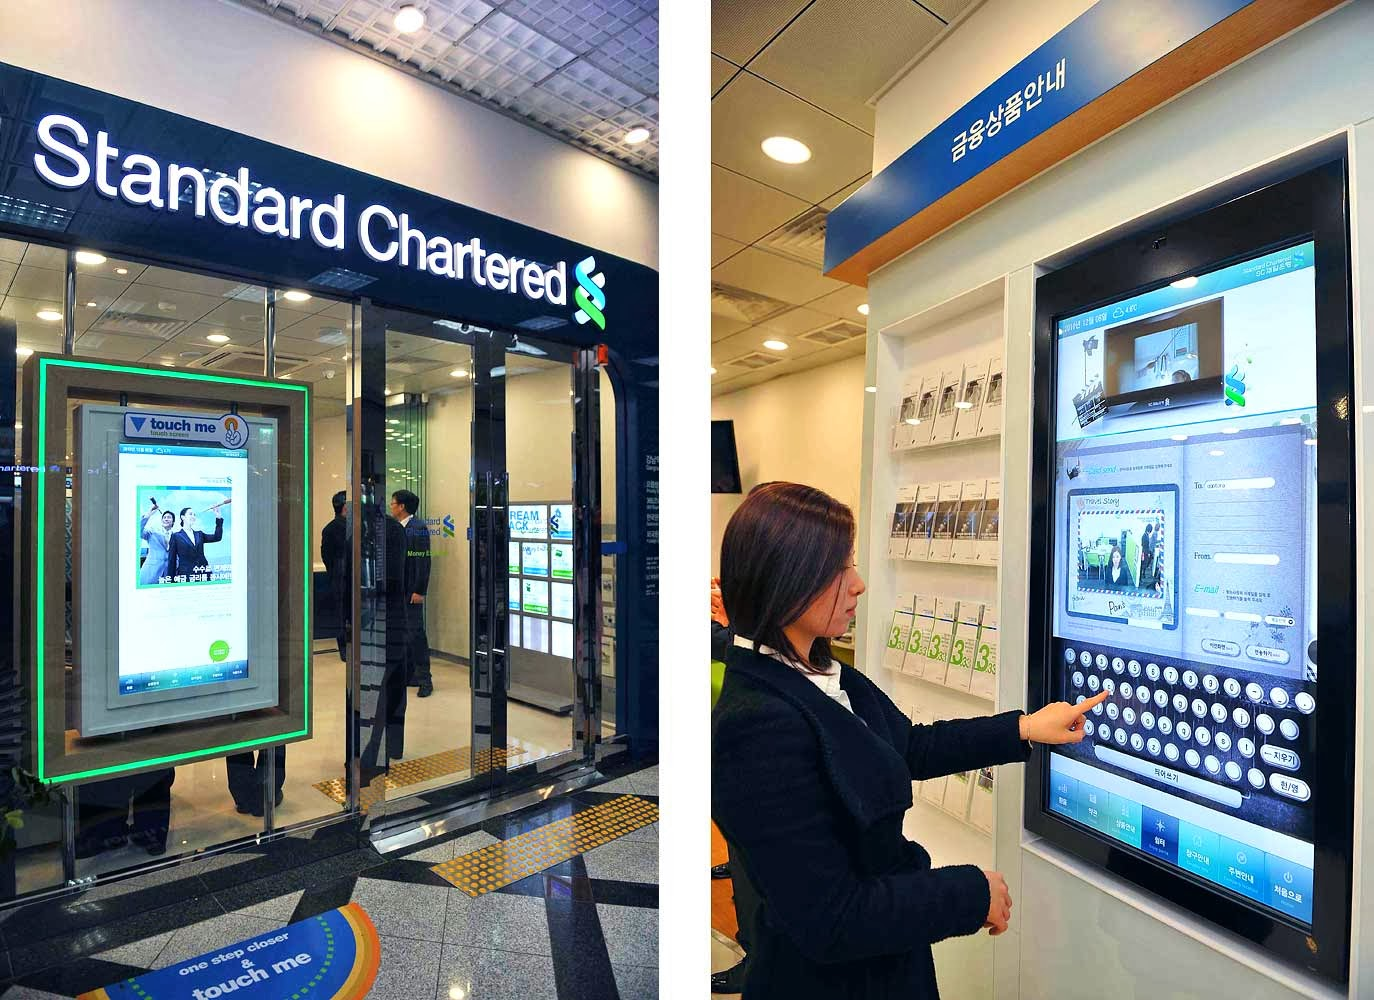 Standard Bank Chartered, British Standard Bank Chartered, digital transformation, Digitization, new tech,